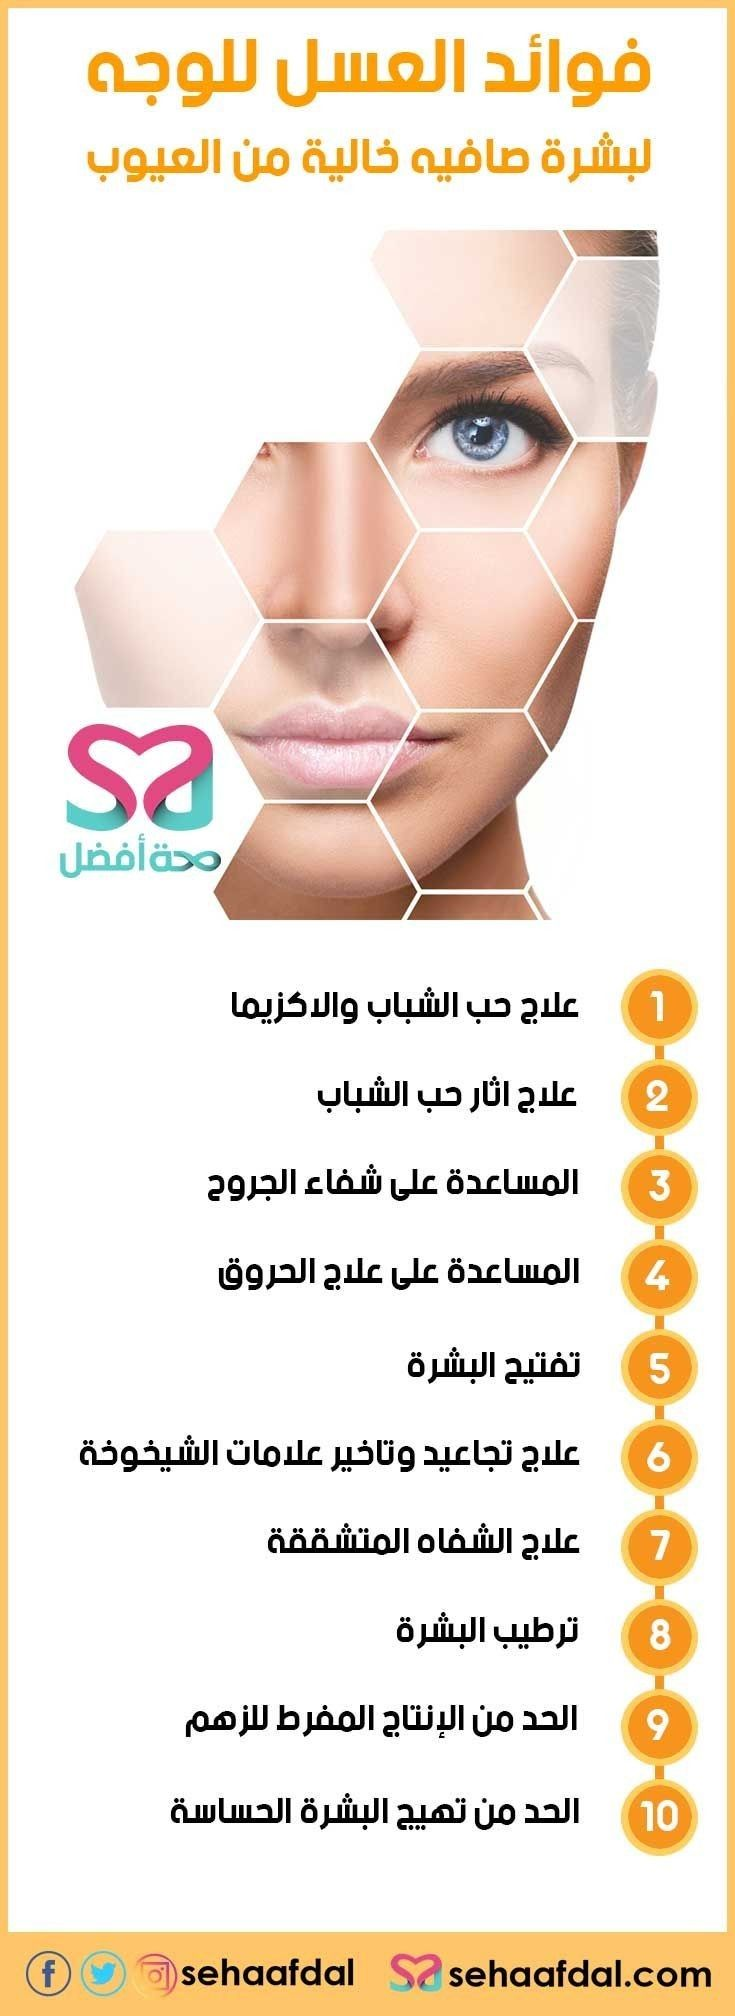 Pin By Pink On منوعات Beauty Care Skin Care Hair Growth Diy